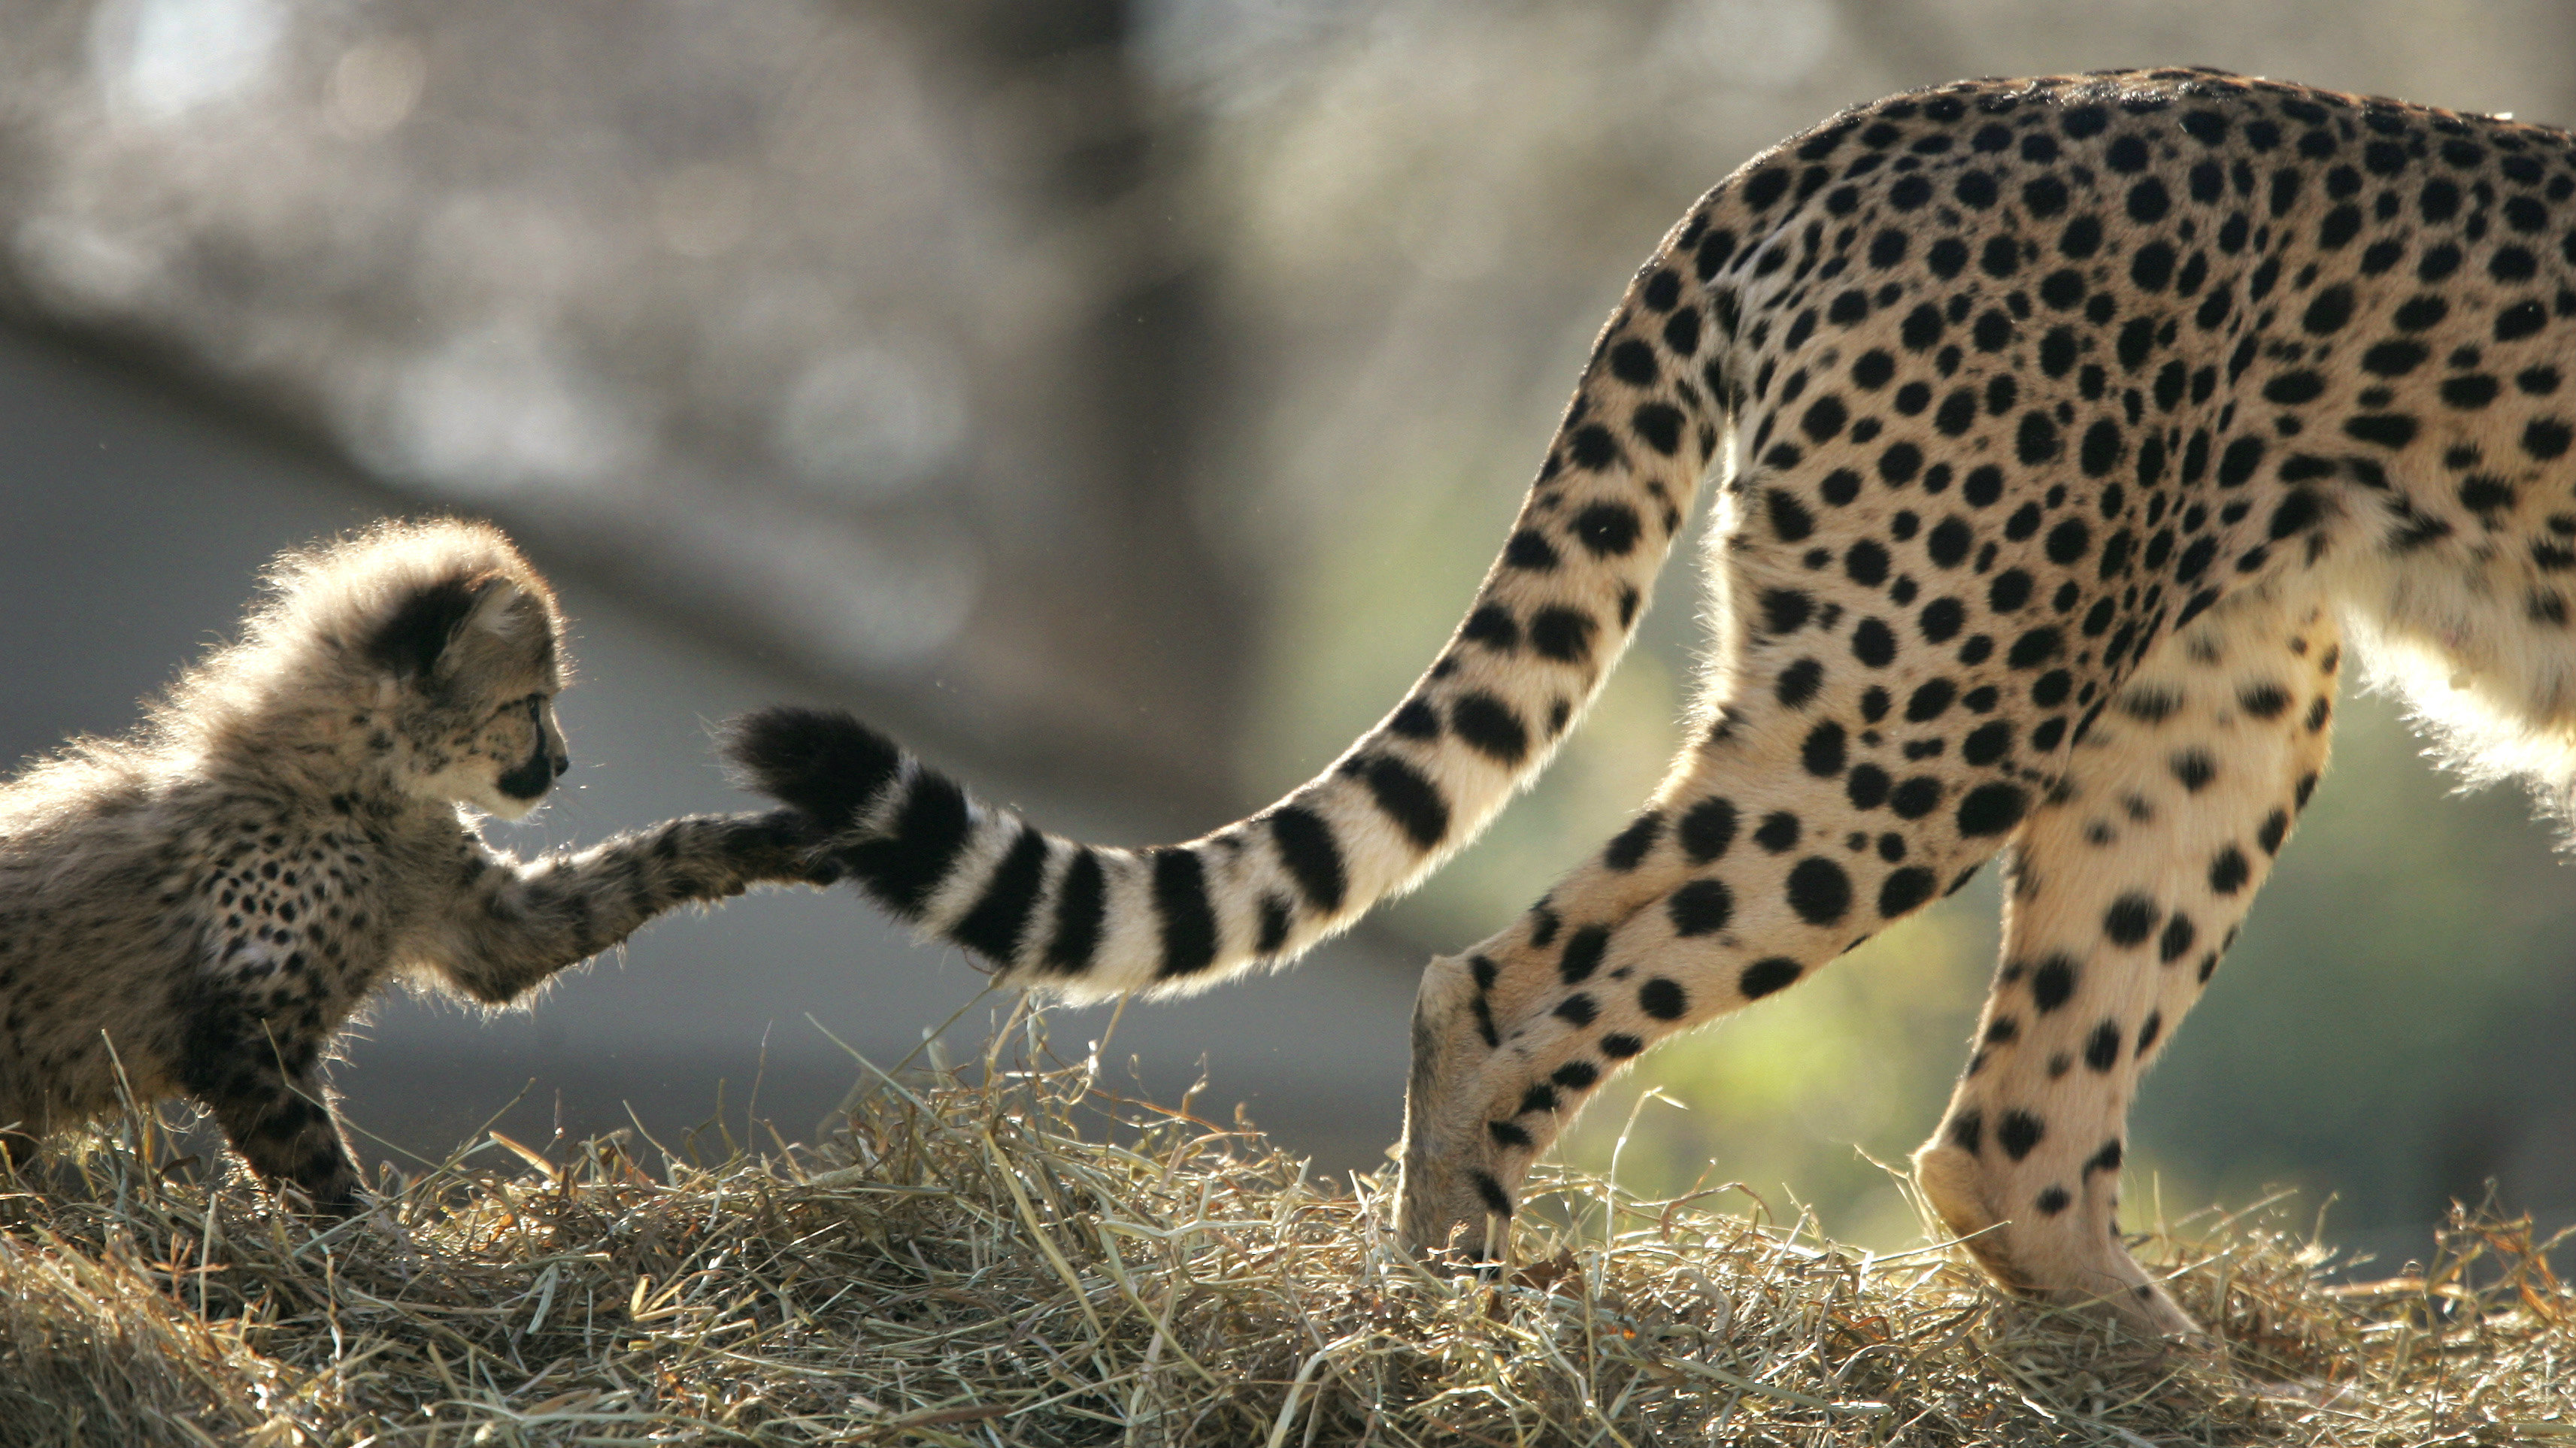 some cheetahs are terrible mothers and that leads to exactly what